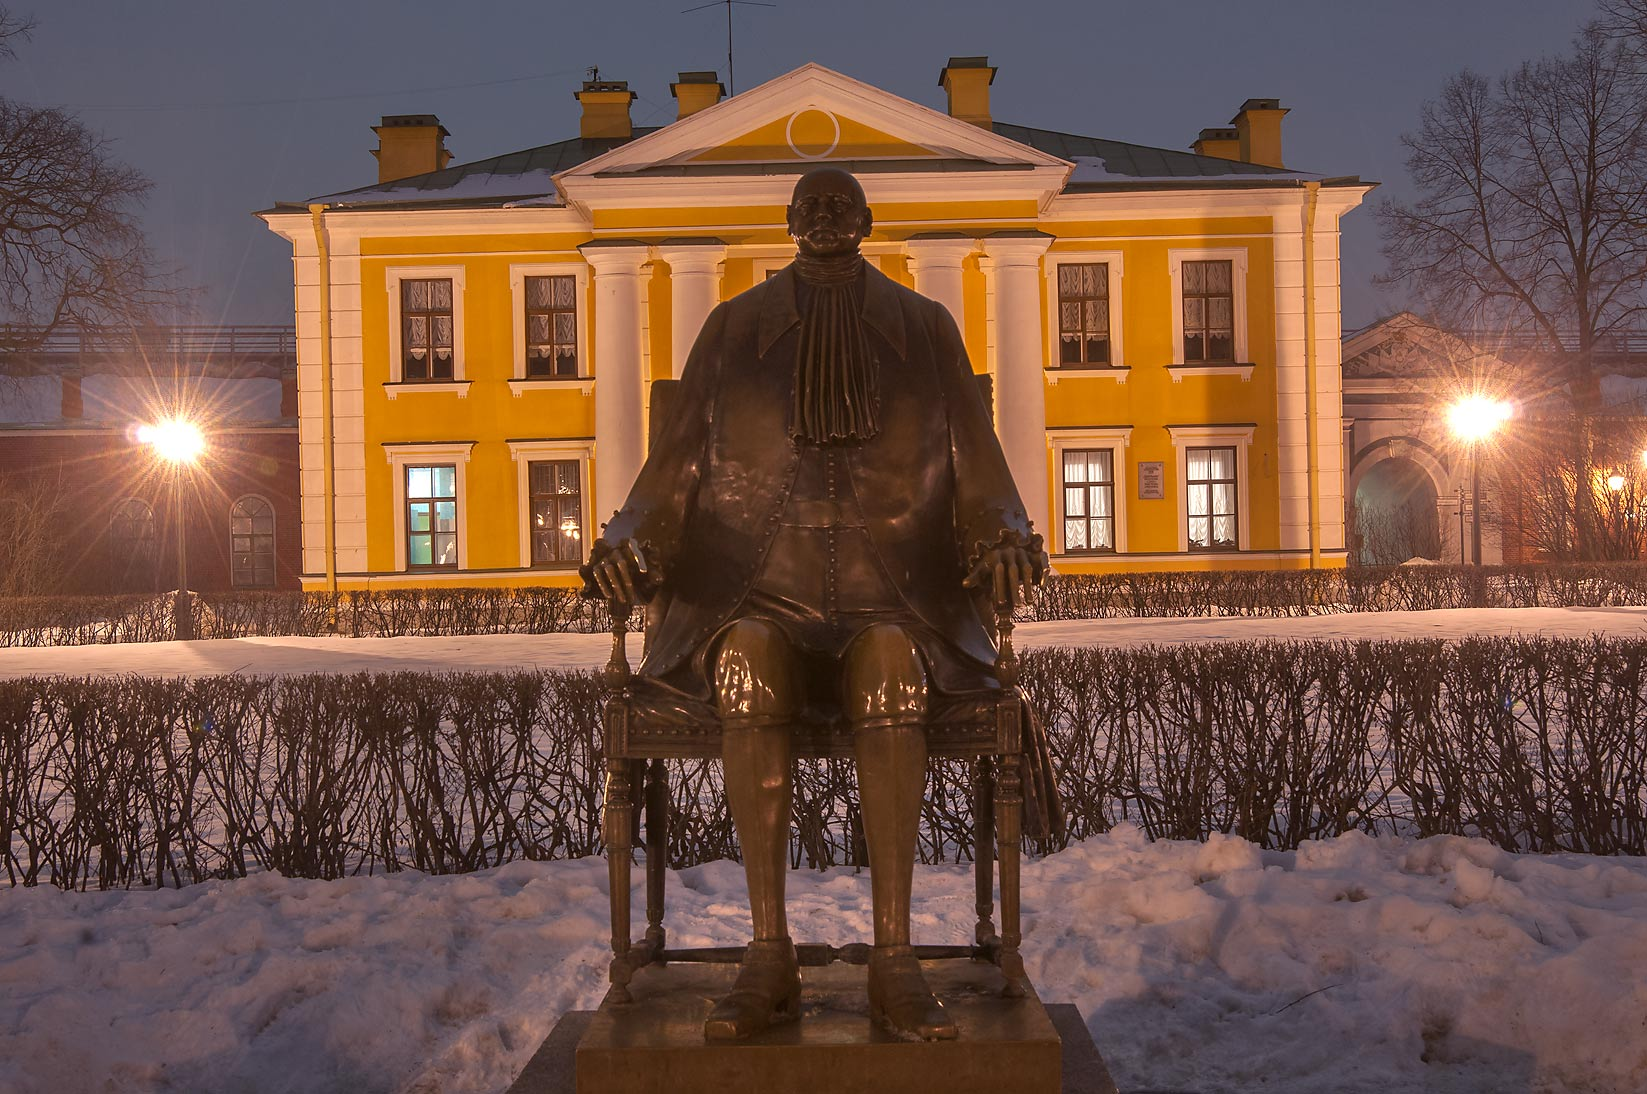 Peter the Great sculpture in Peter and Paul Fortress. St.Petersburg, Russia